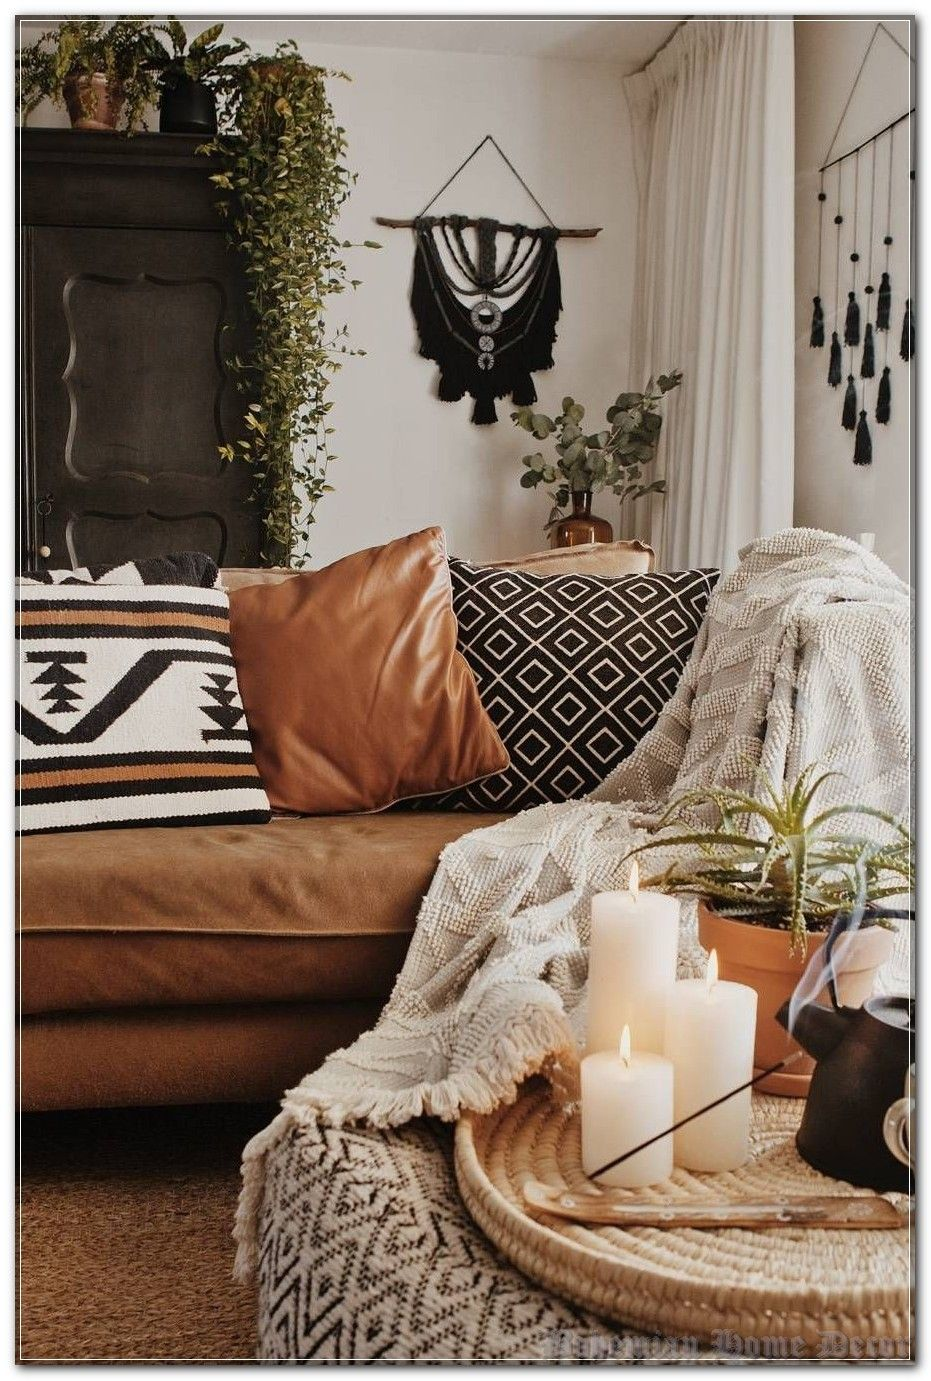 Now You Can Have Your Bohemian Home Decor Done Safely